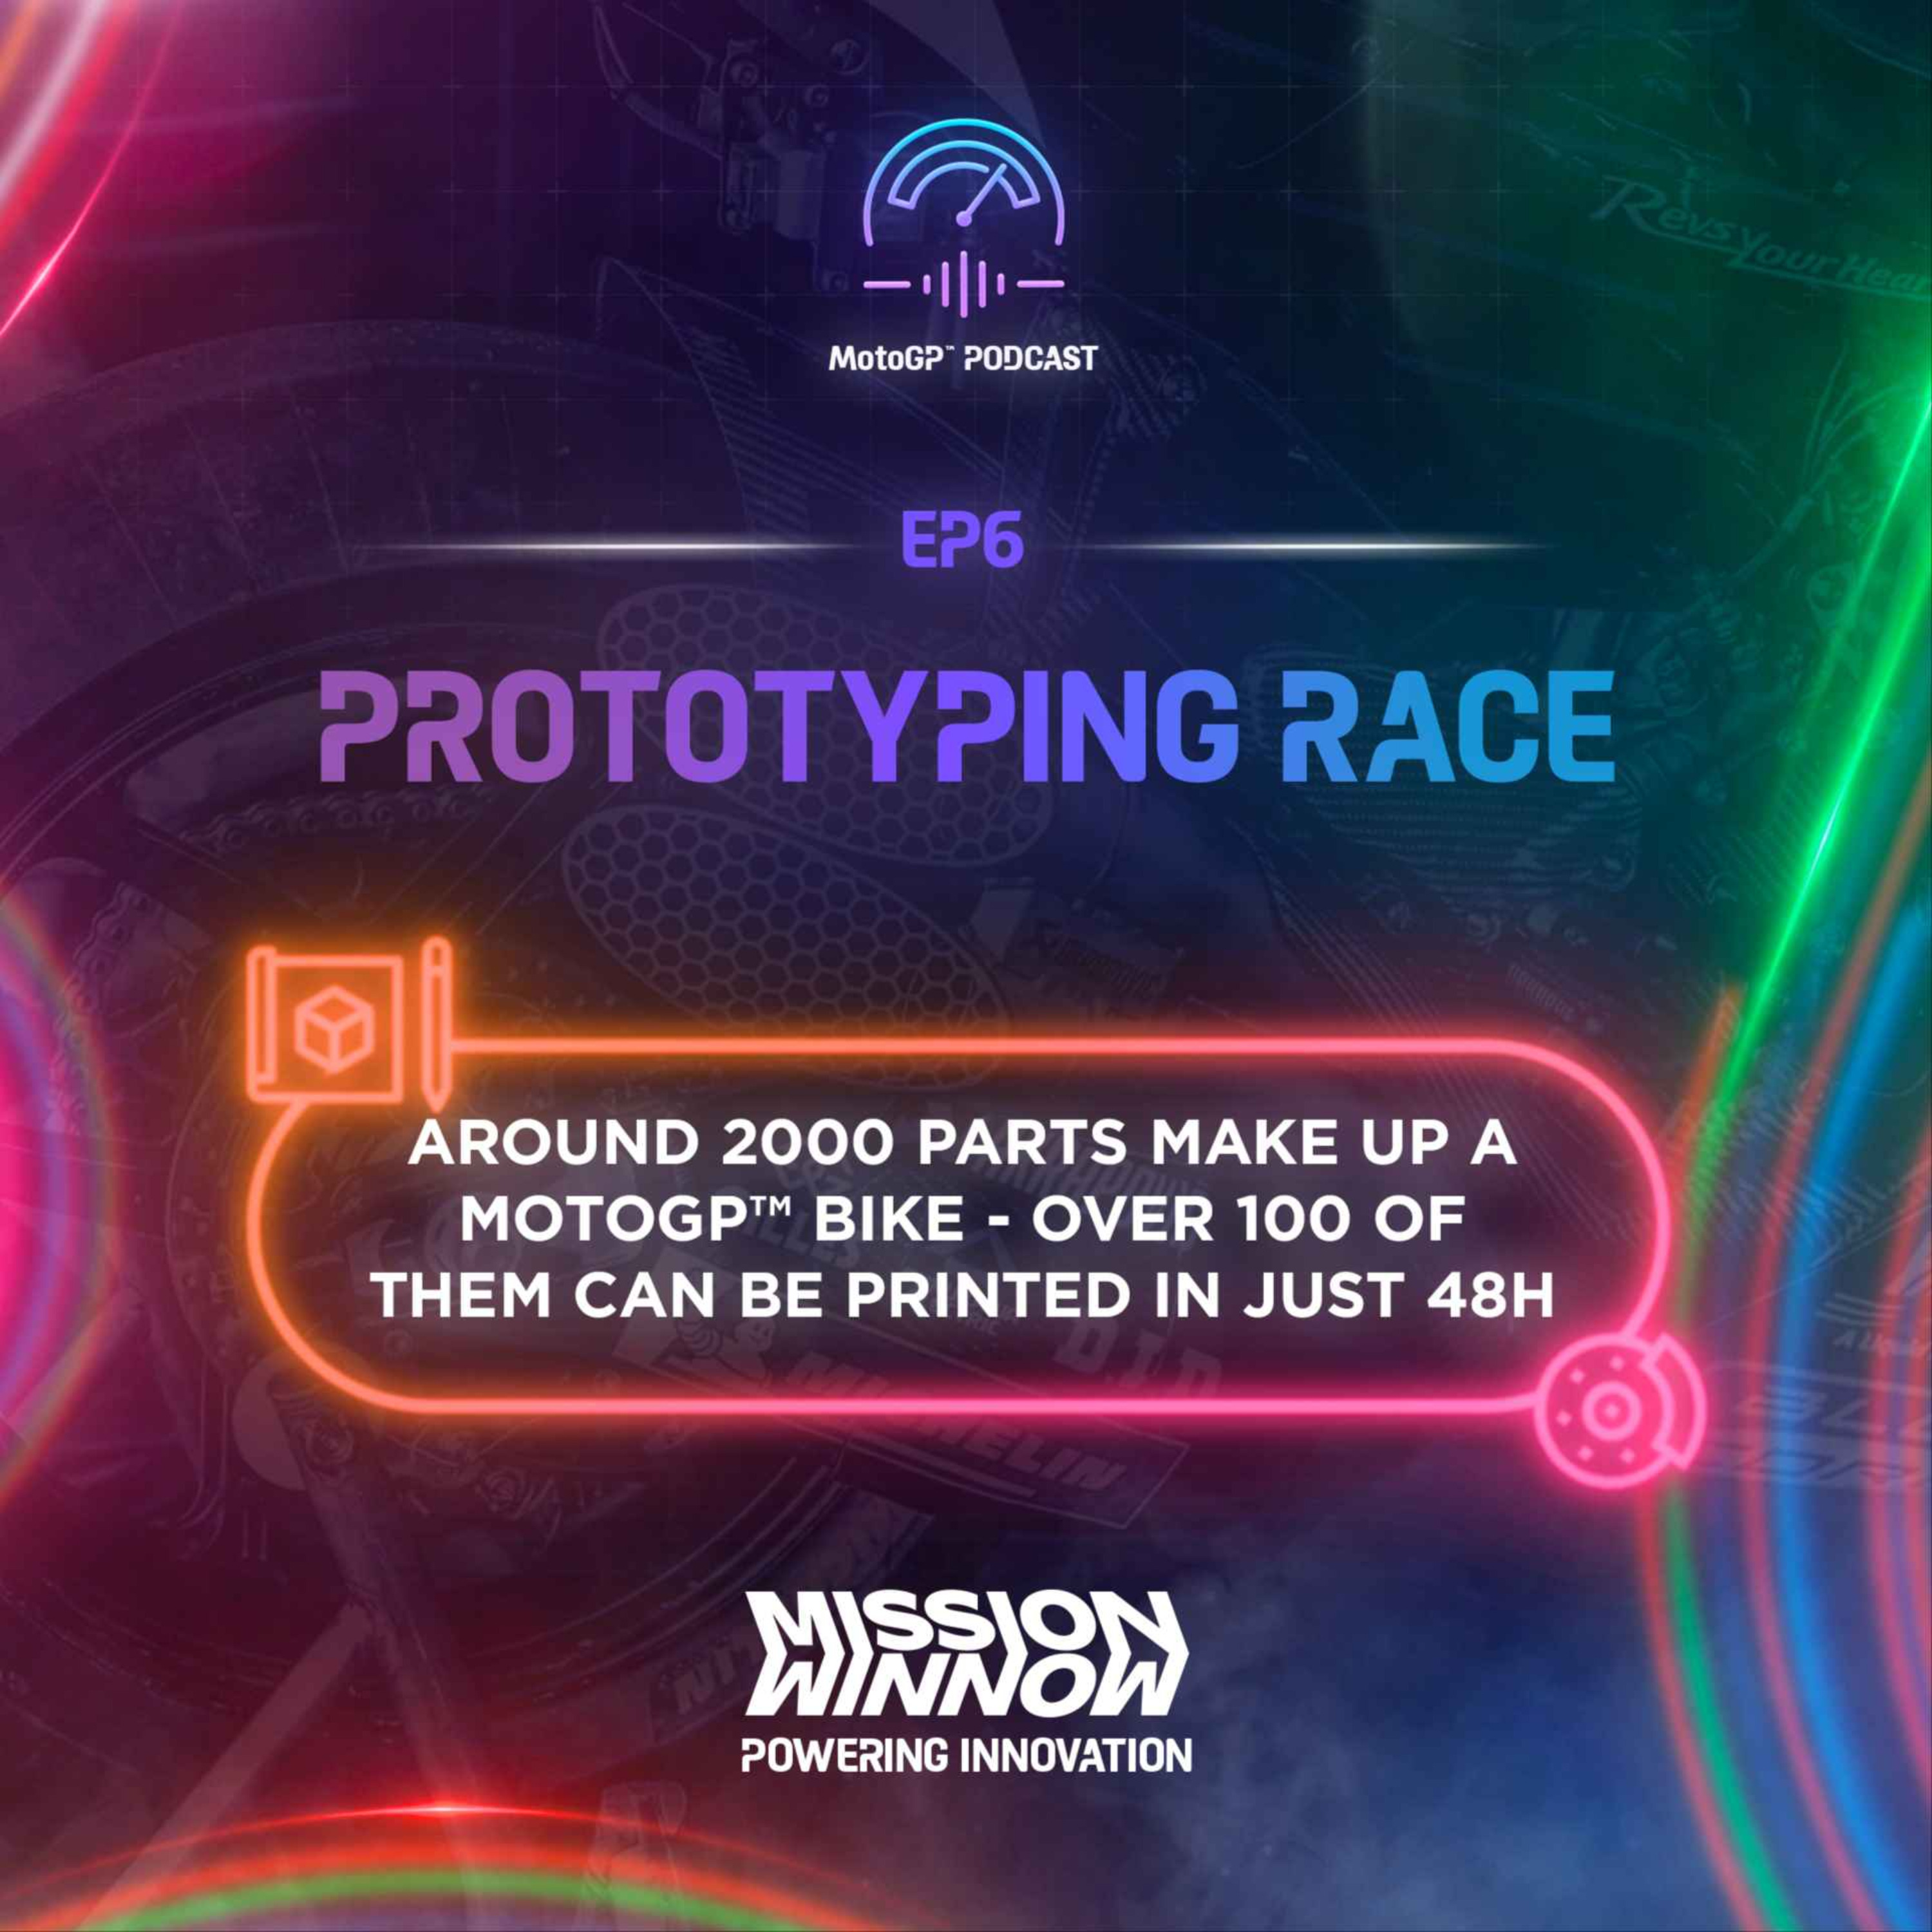 Mission Winnow presents: Powering Innovation – EP6: The prototyping race